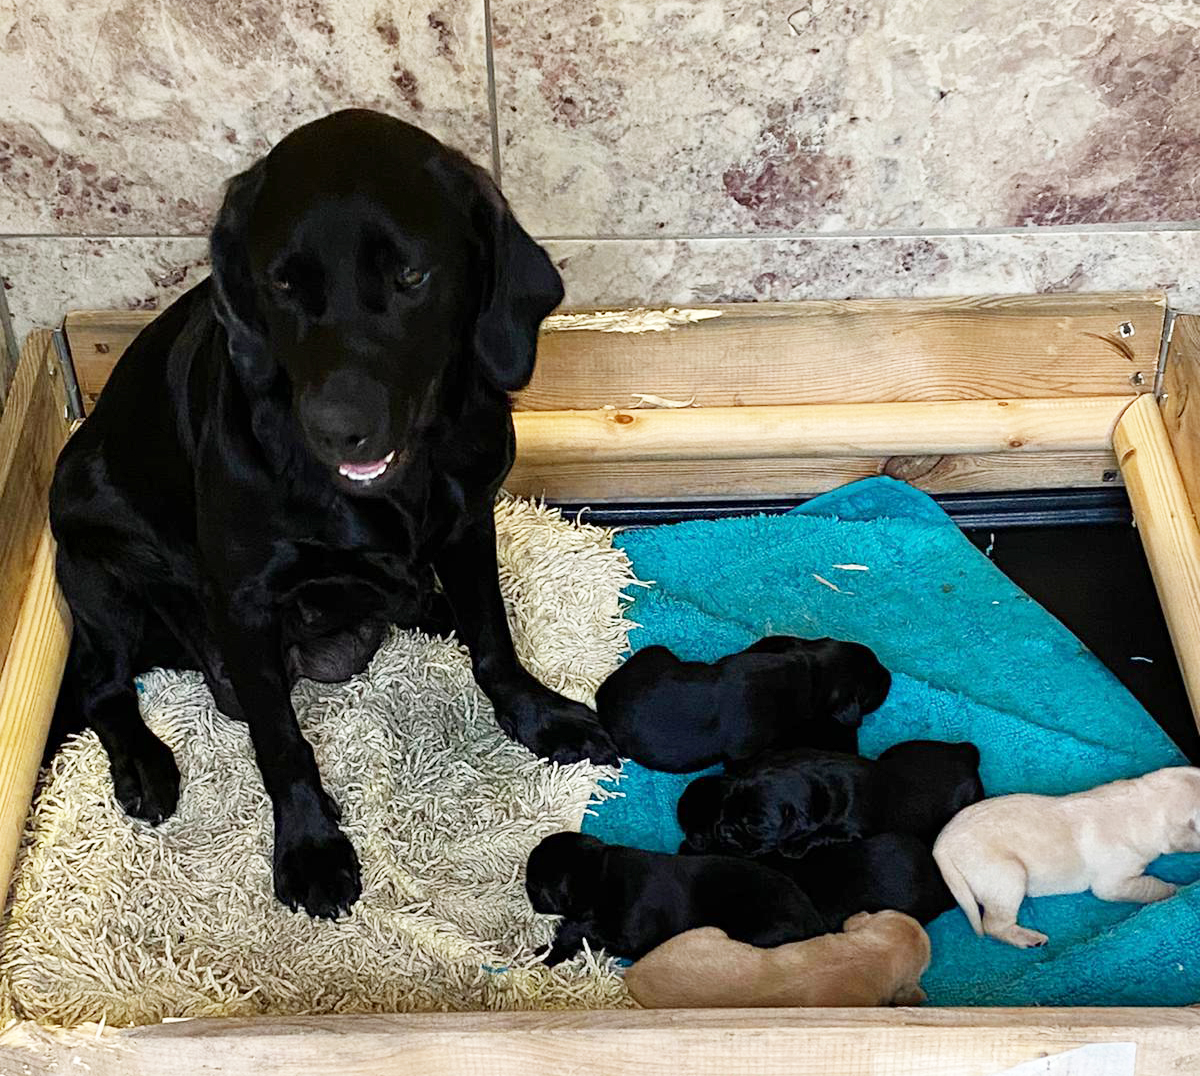 Labrador with litter